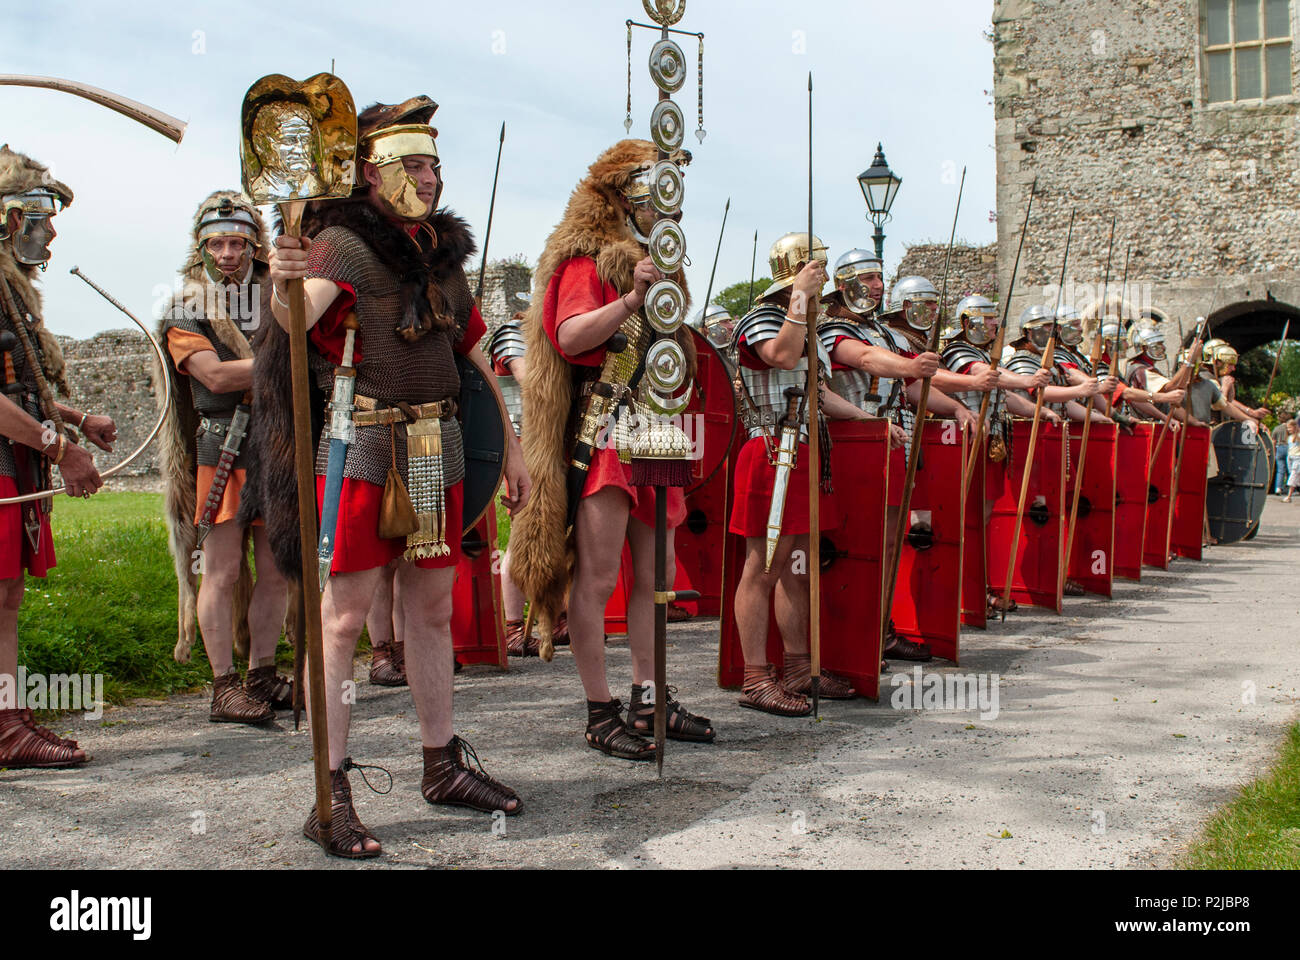 Romans in Britain! Re-enactment soldiers at Portchester Castle, Hampshire, UK - Stock Image